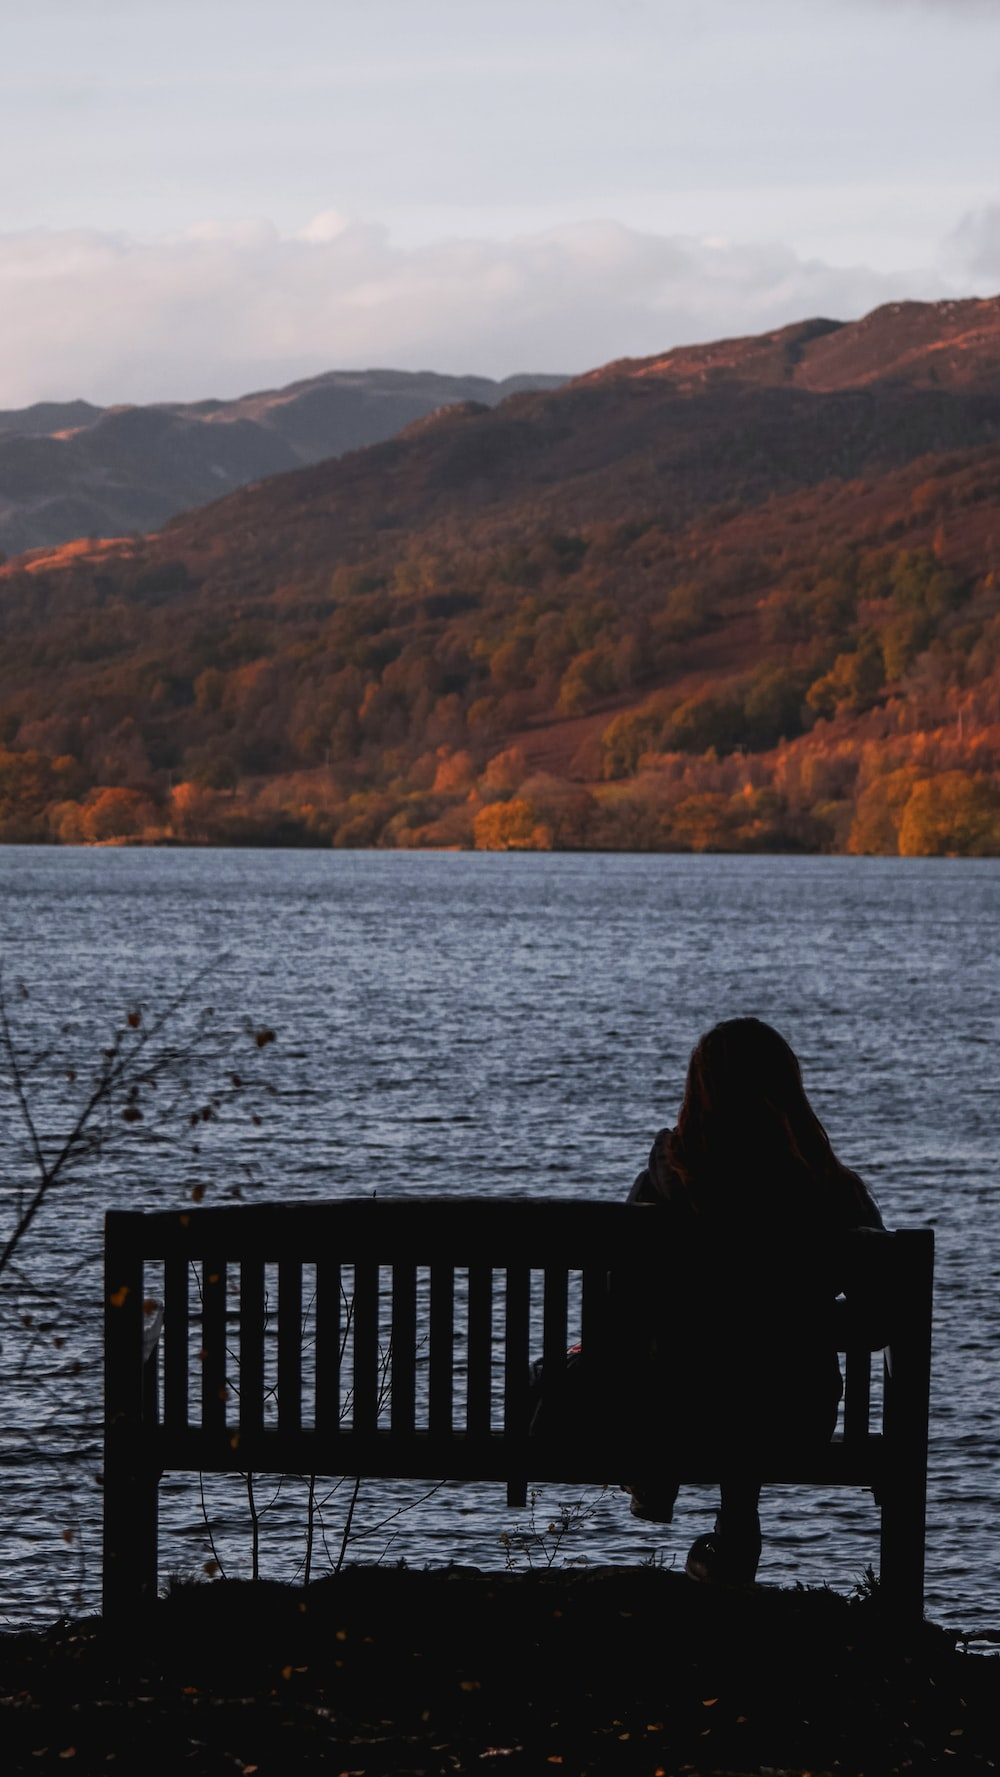 person sitting on black wooden bench near body of water during daytime